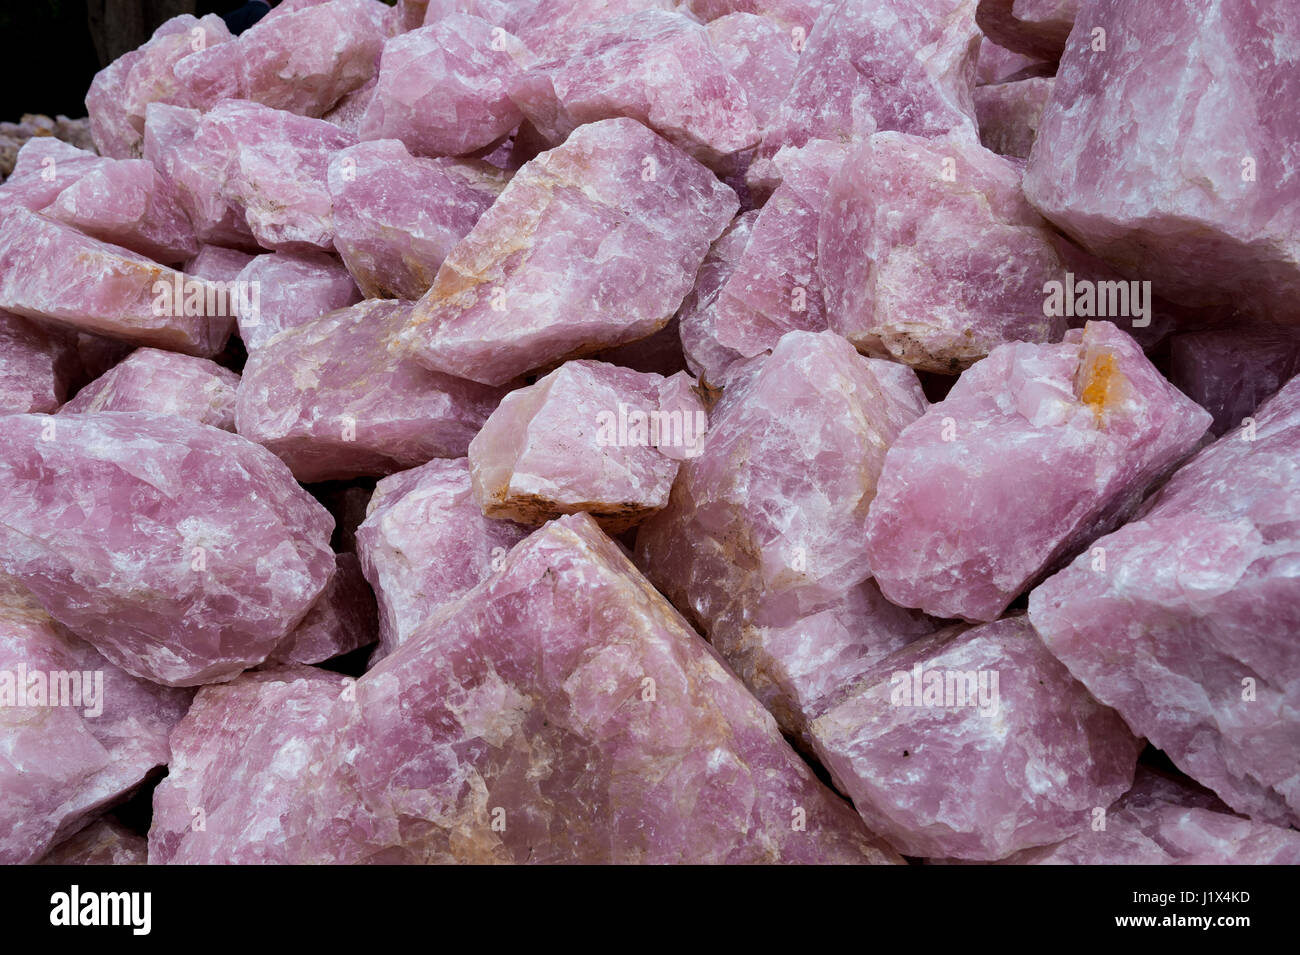 Rose quartz mined near Mzimba, Malawi, by artisanal miners for export mainly to China - Stock-Bilder